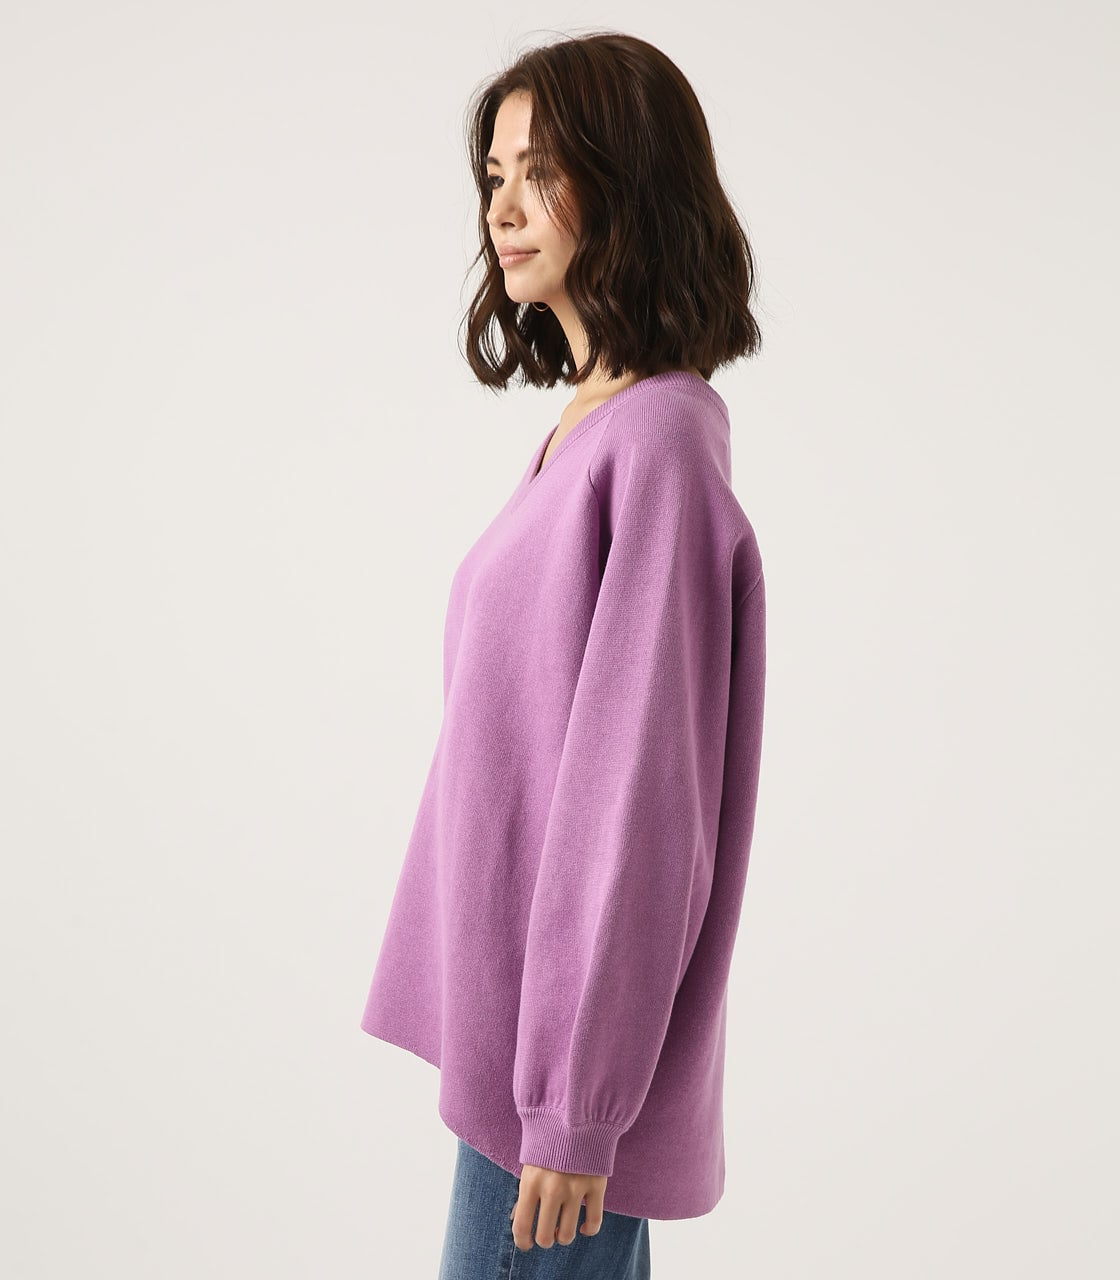 【AZUL BY MOUSSY】SWEATTER Vネック LOOSE TOPS 詳細画像 L/PUR 6